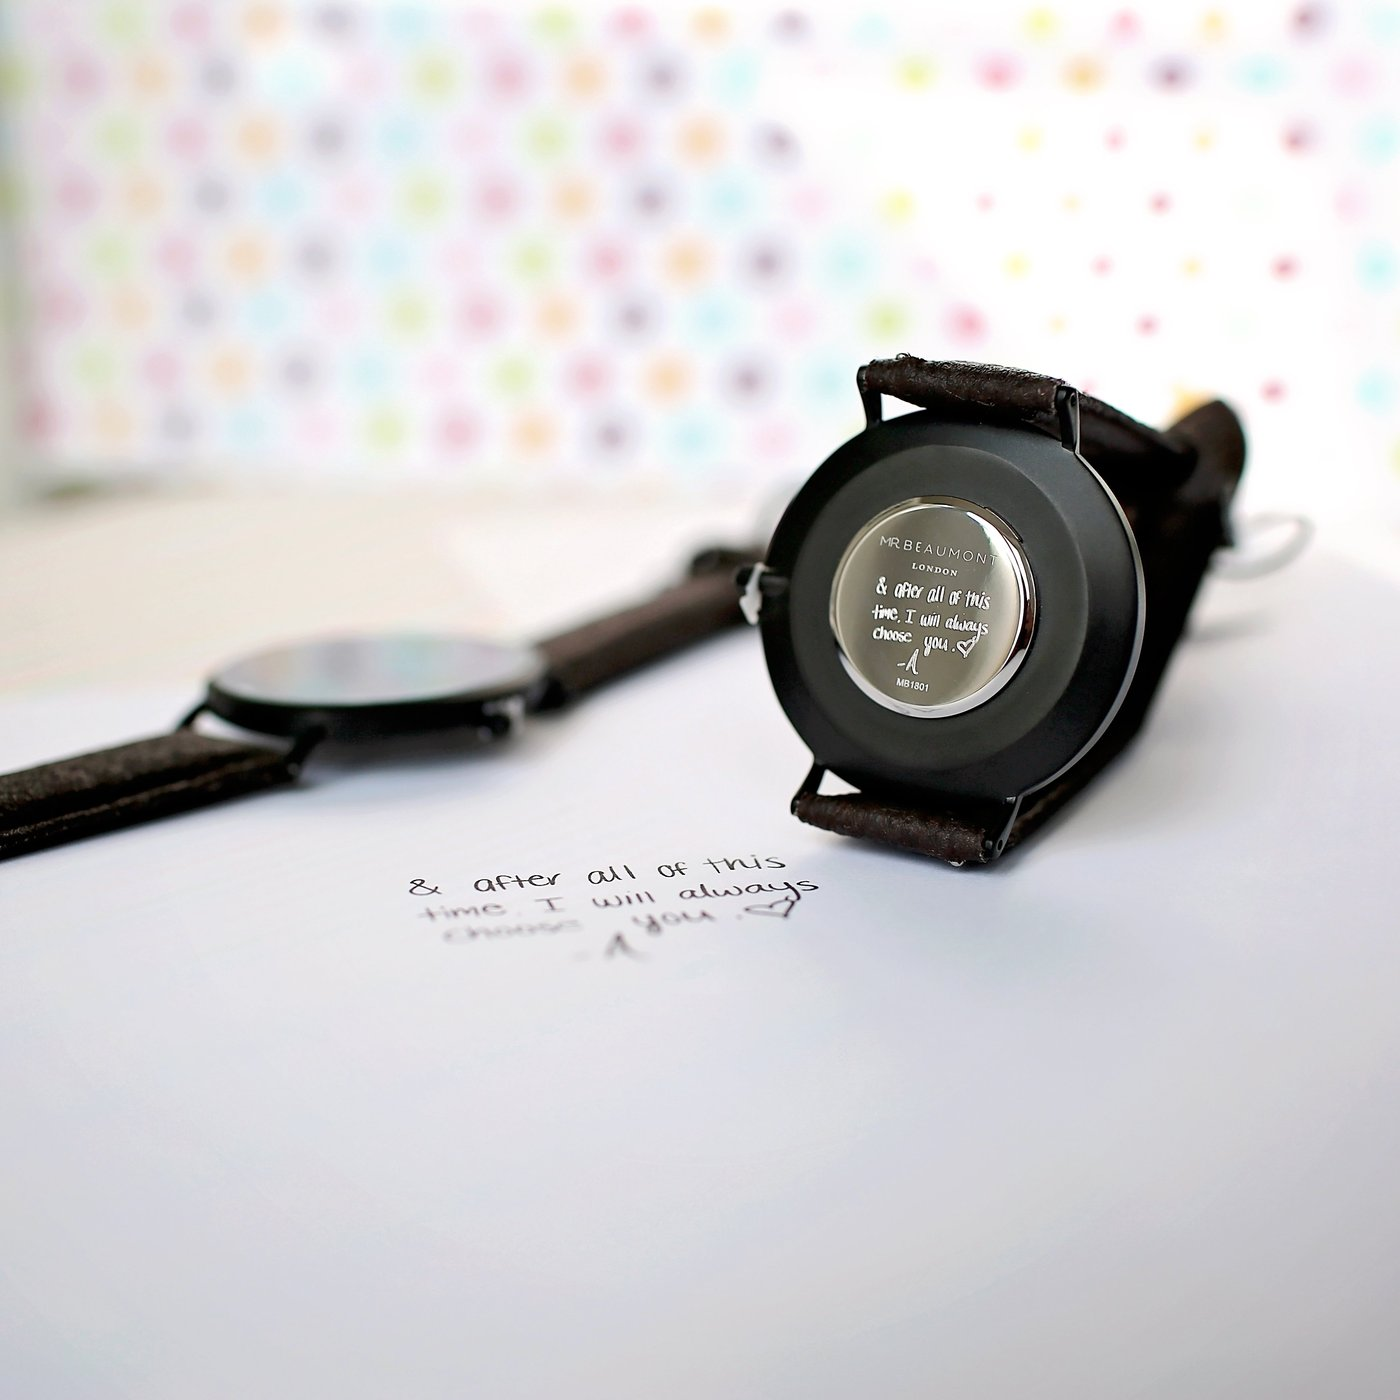 Own Handwriting Engraved Mr Beaumont White Face Black Vegan Watch-OurPersonalisedGifts.com